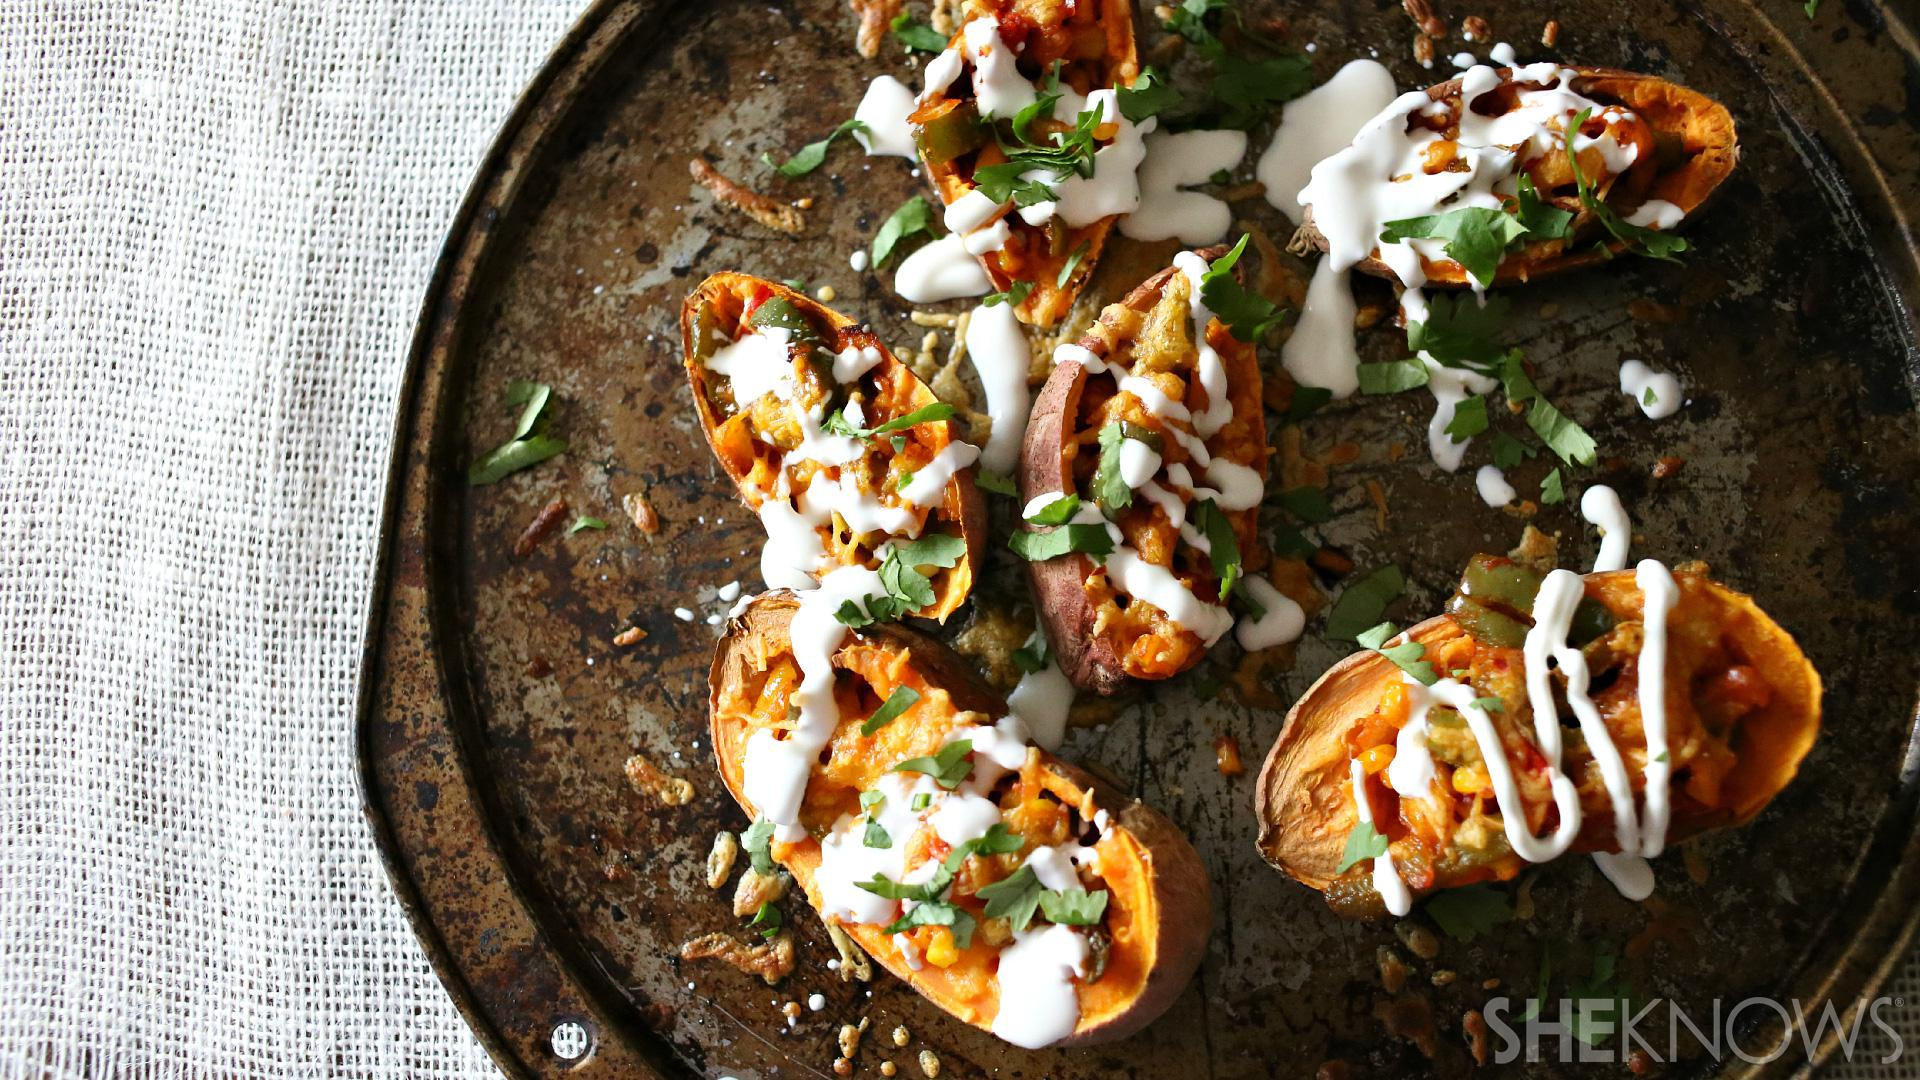 ... an appetizer favorite with these Southwest loaded sweet potato skins